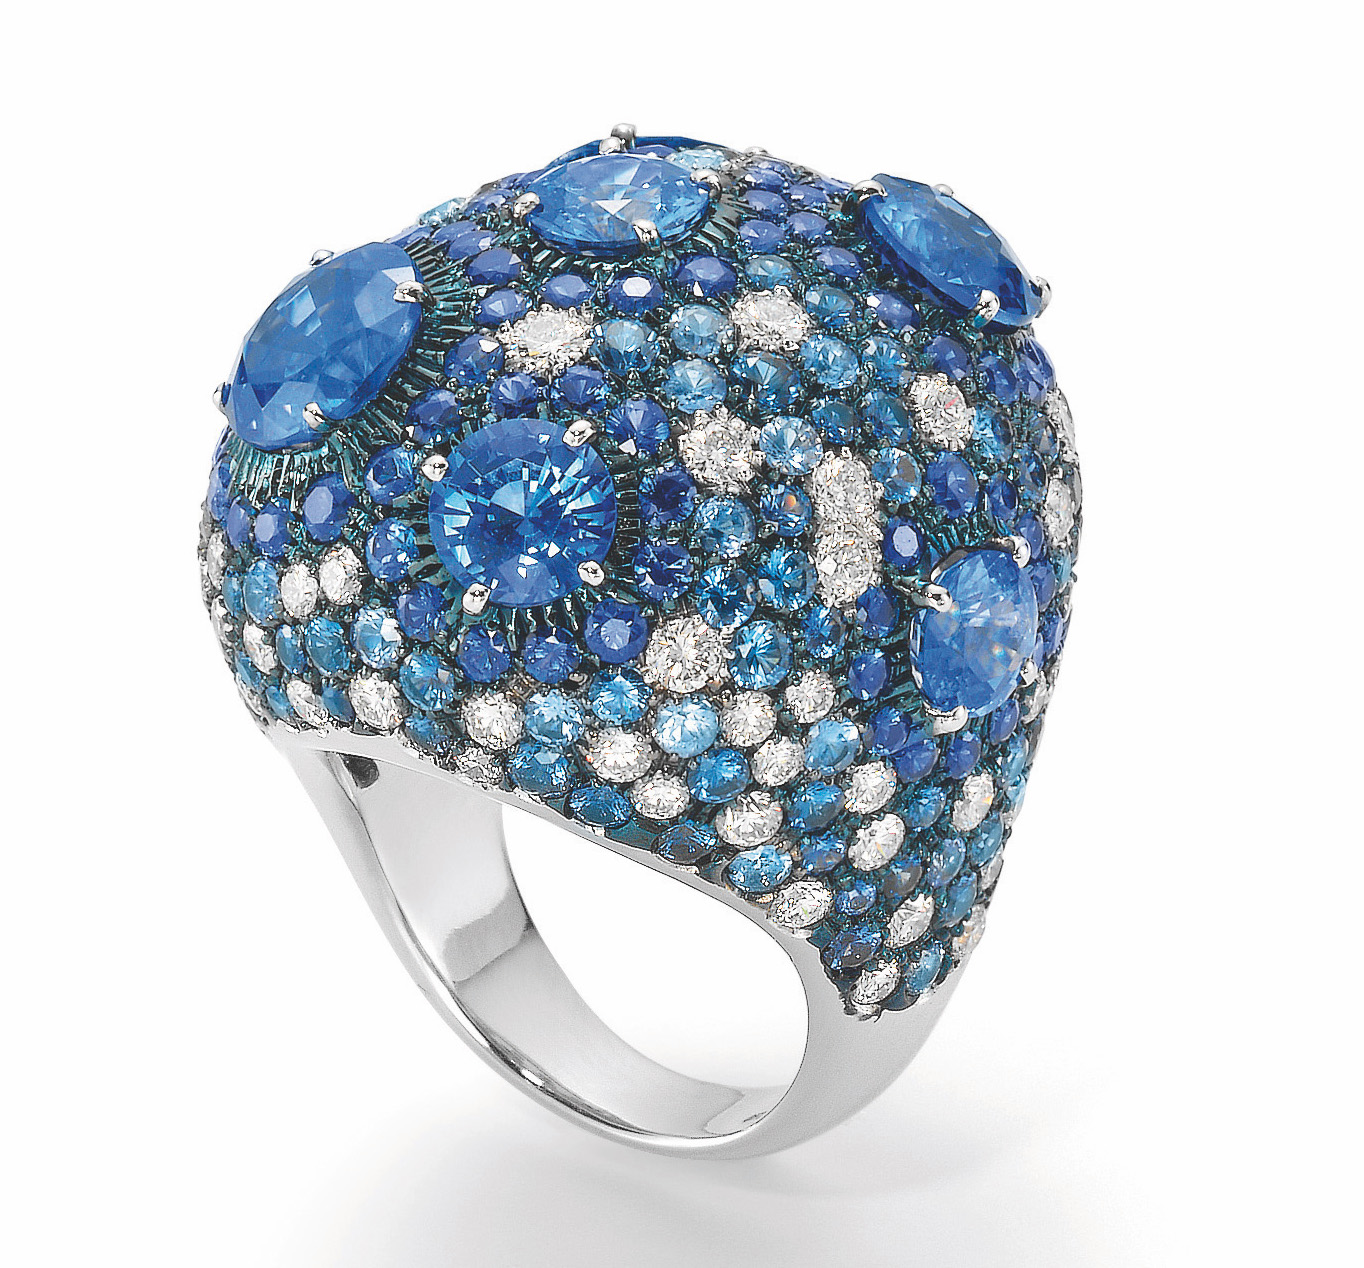 Roberto Coin Haute Couture ring